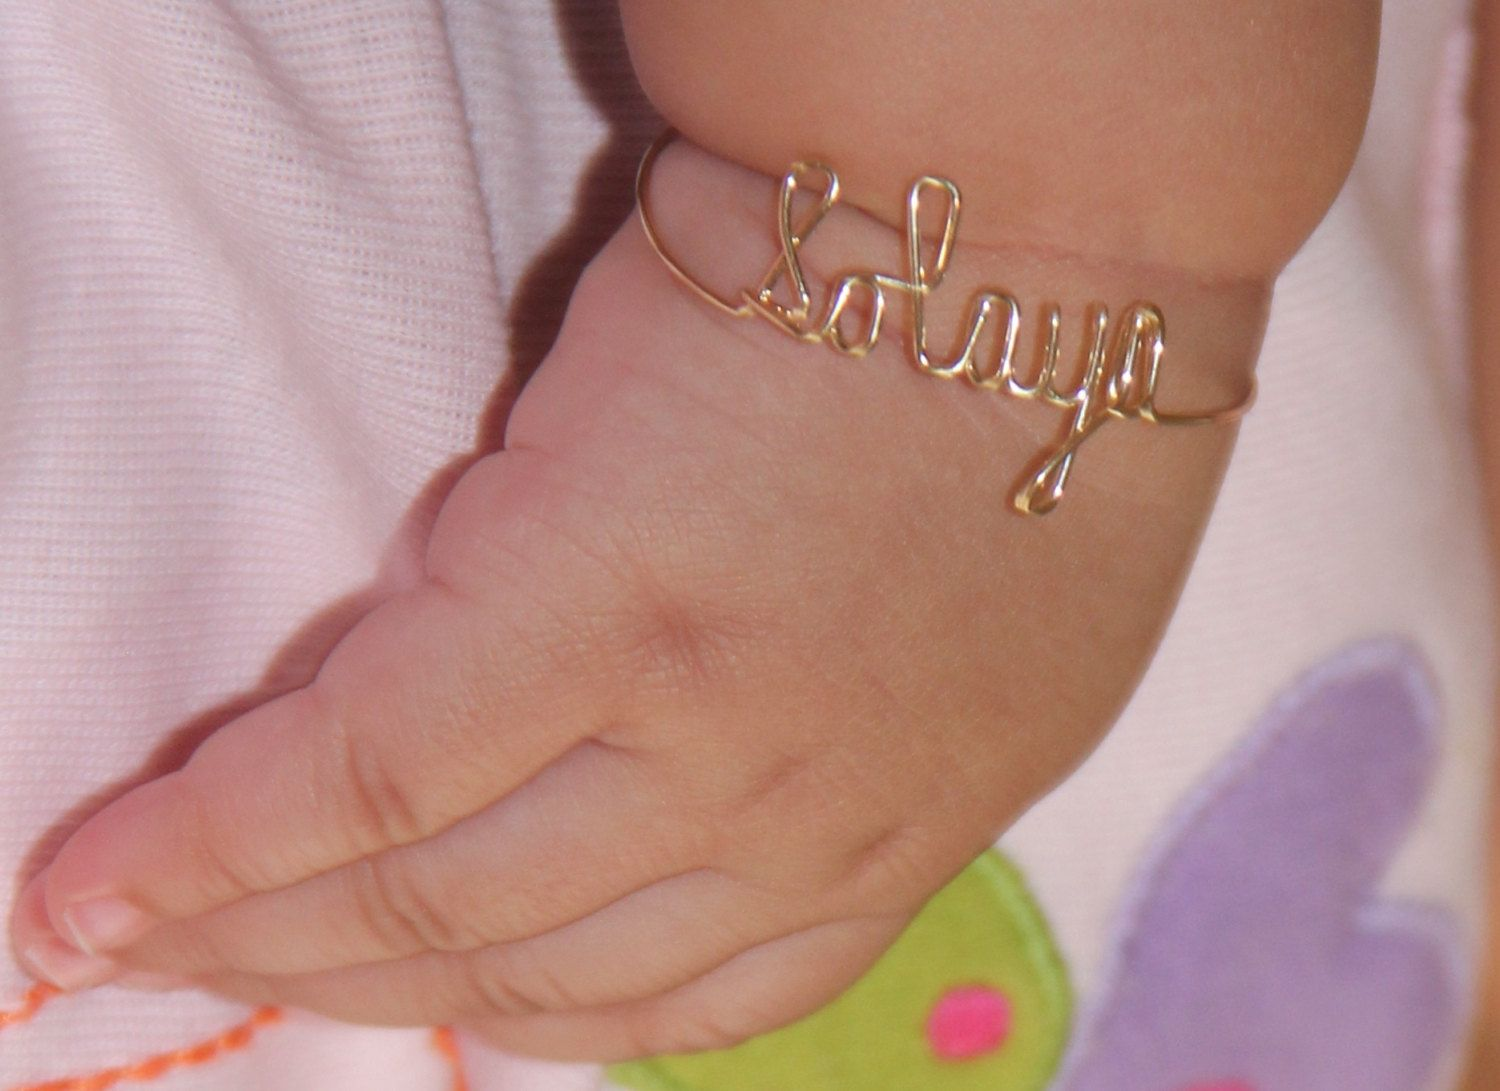 Silver Bracelet For Baby Boy In India - Bracelets & Bangles Design ...